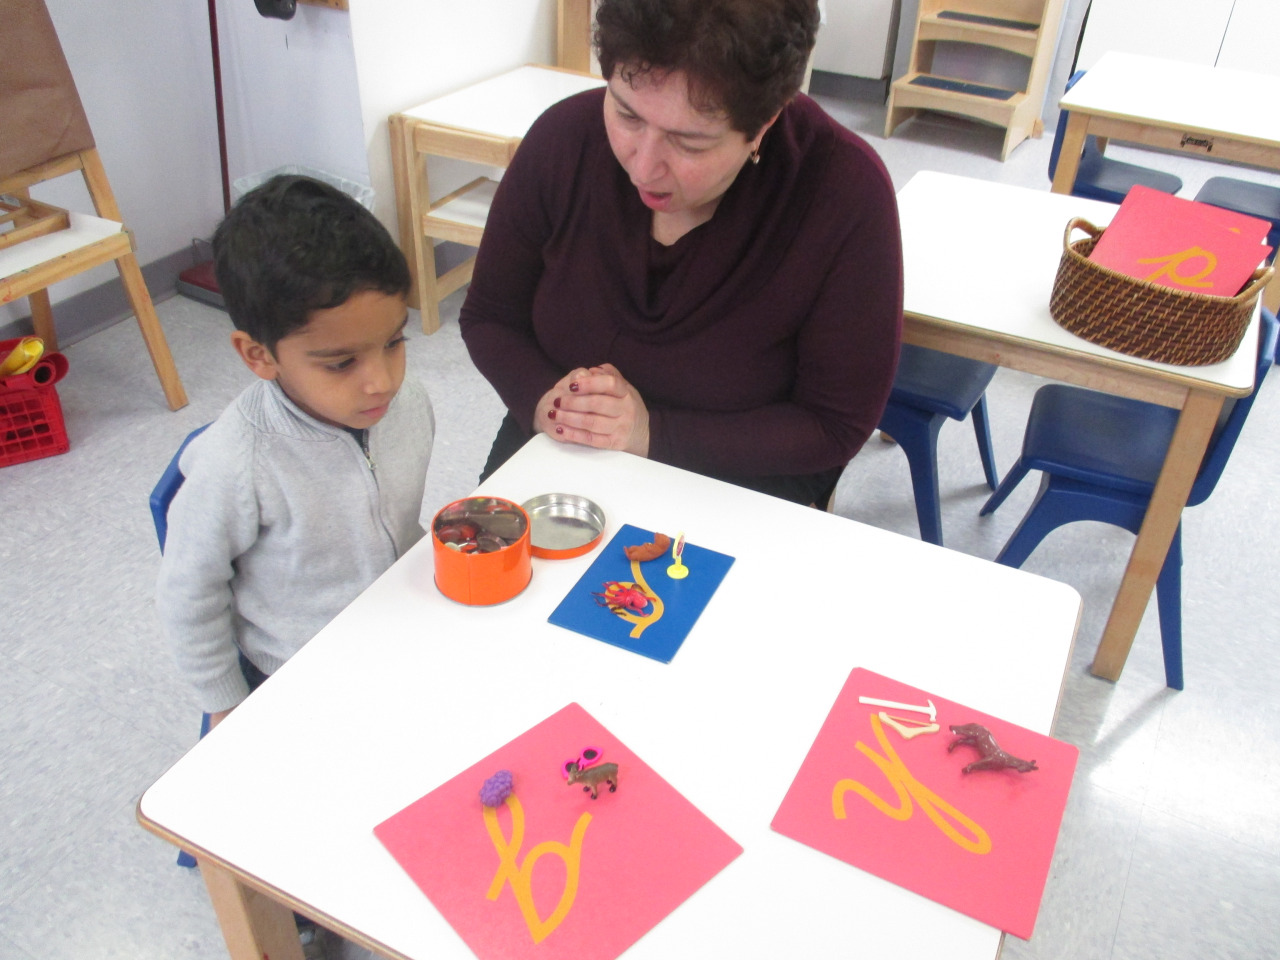 After the Winter break, the Primary 1 students got right back to work on their lessons.  One student received a lesson about letter sounds using Sandpaper Letters and objects.